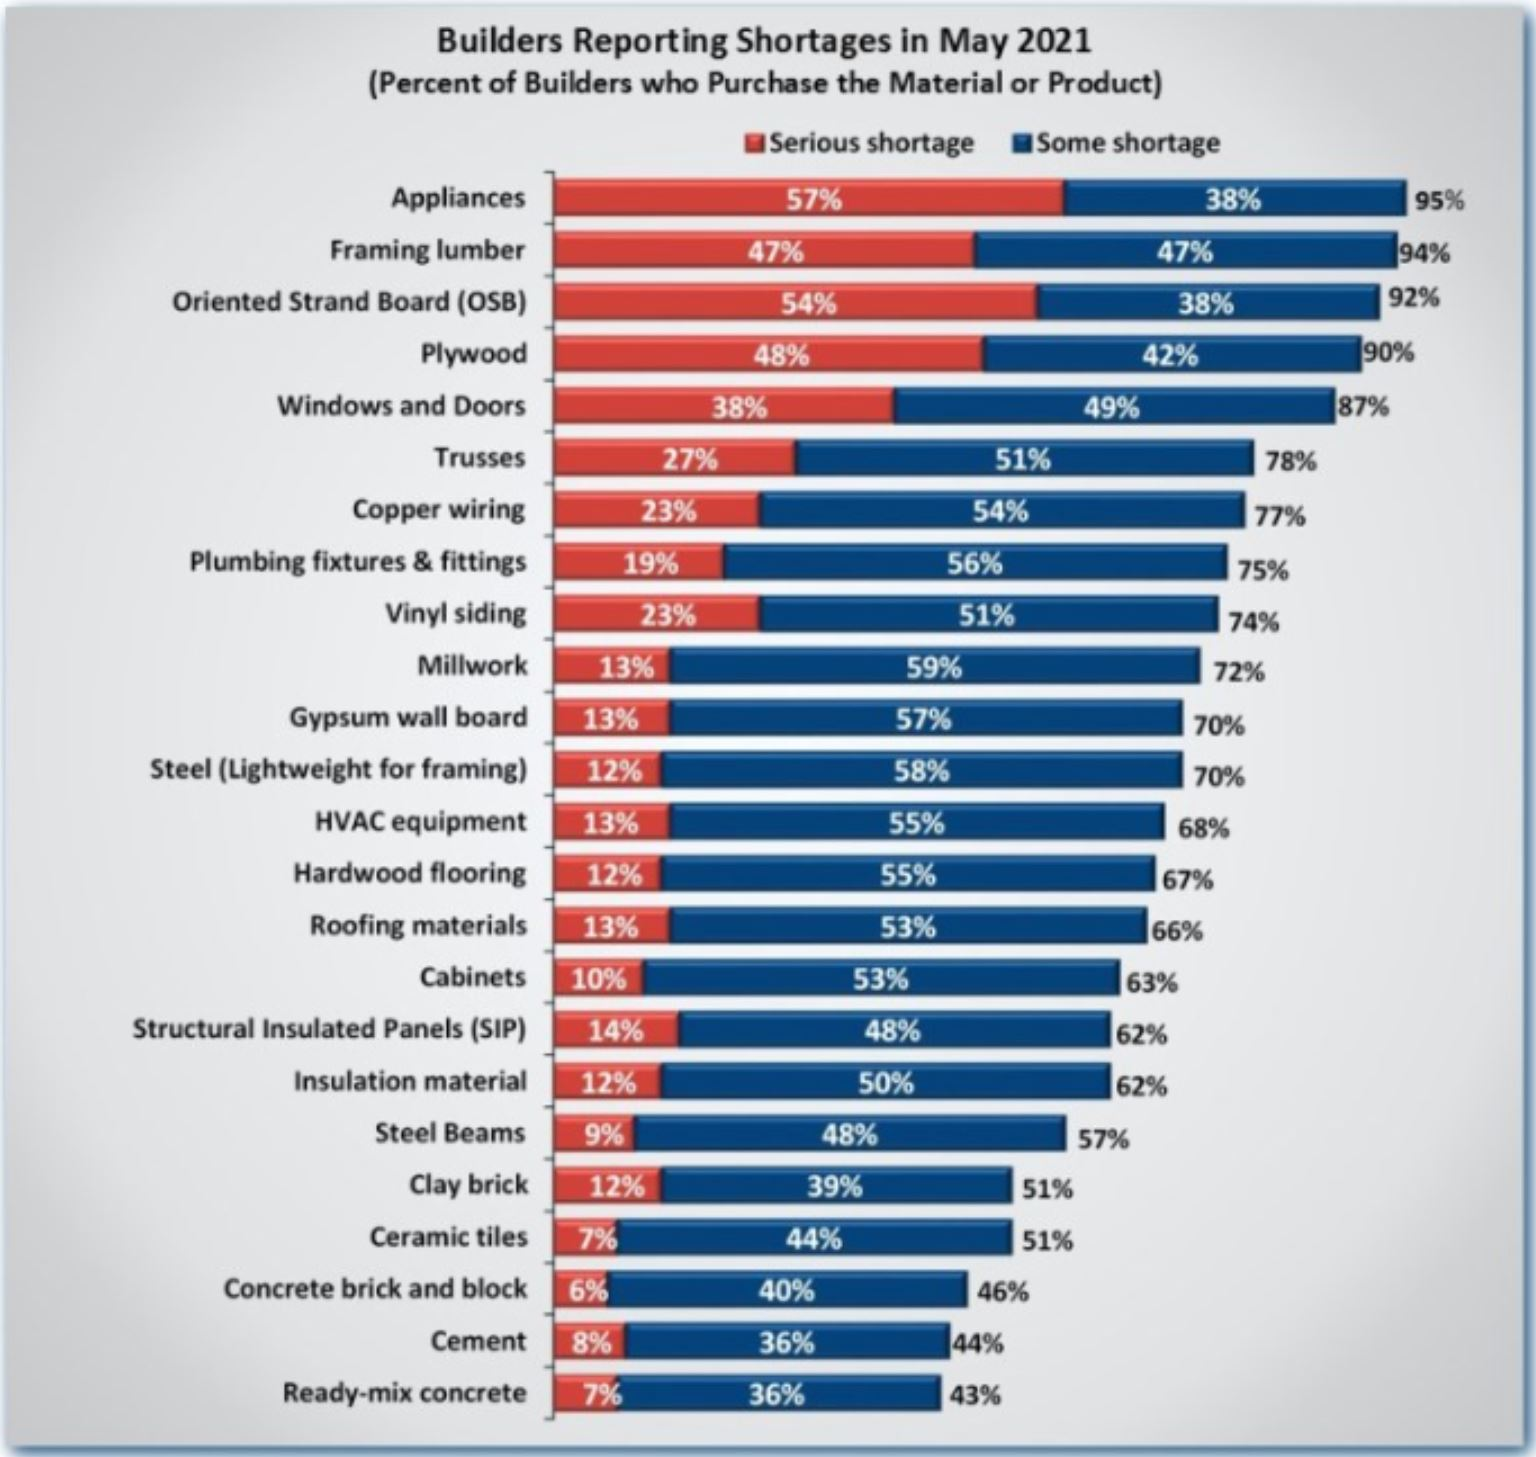 Realtor Magazine 2021 06 02 Builders reporting Building materials Shortages in May 2021 hits record high since going through the China COVID-19 Coronavirus plandemic Hoey Team exp Realty